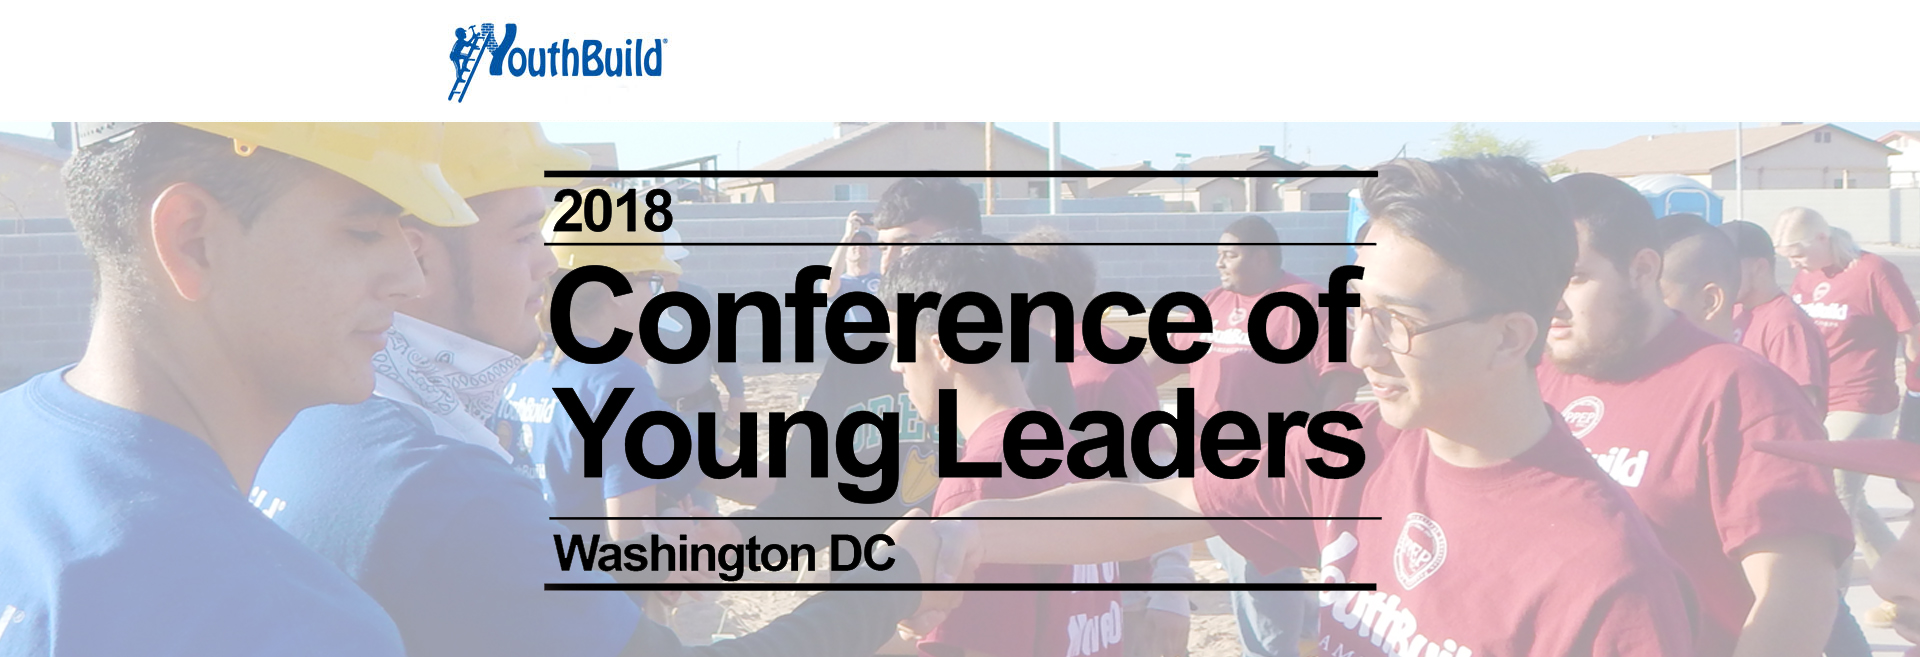 2018 Conference of Young Leaders